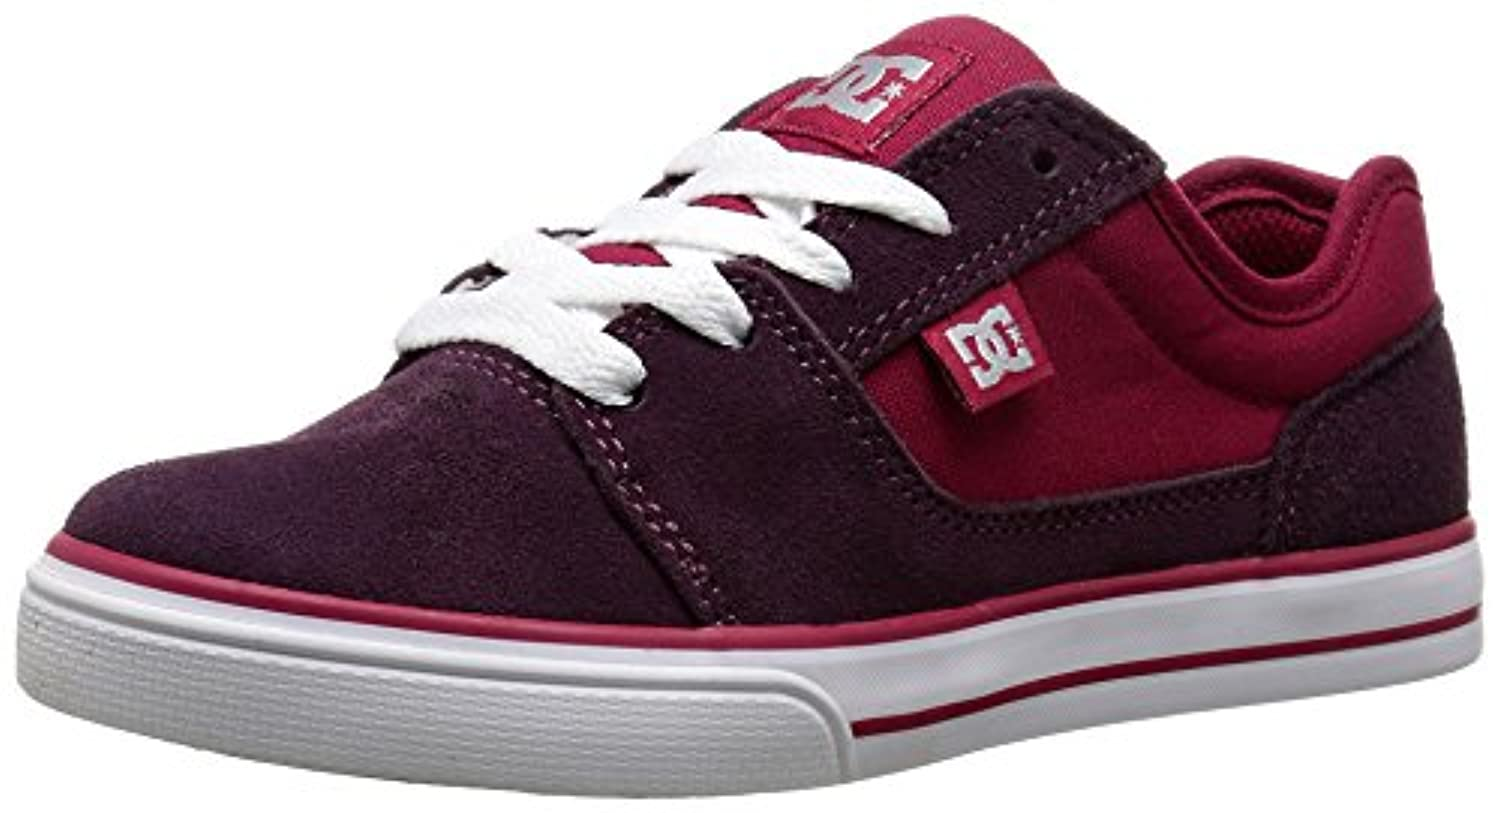 ... Pink DC Tonik Youth Vulcanized Shoes Skate Shoe (Little Kid/Big Kid),  ...